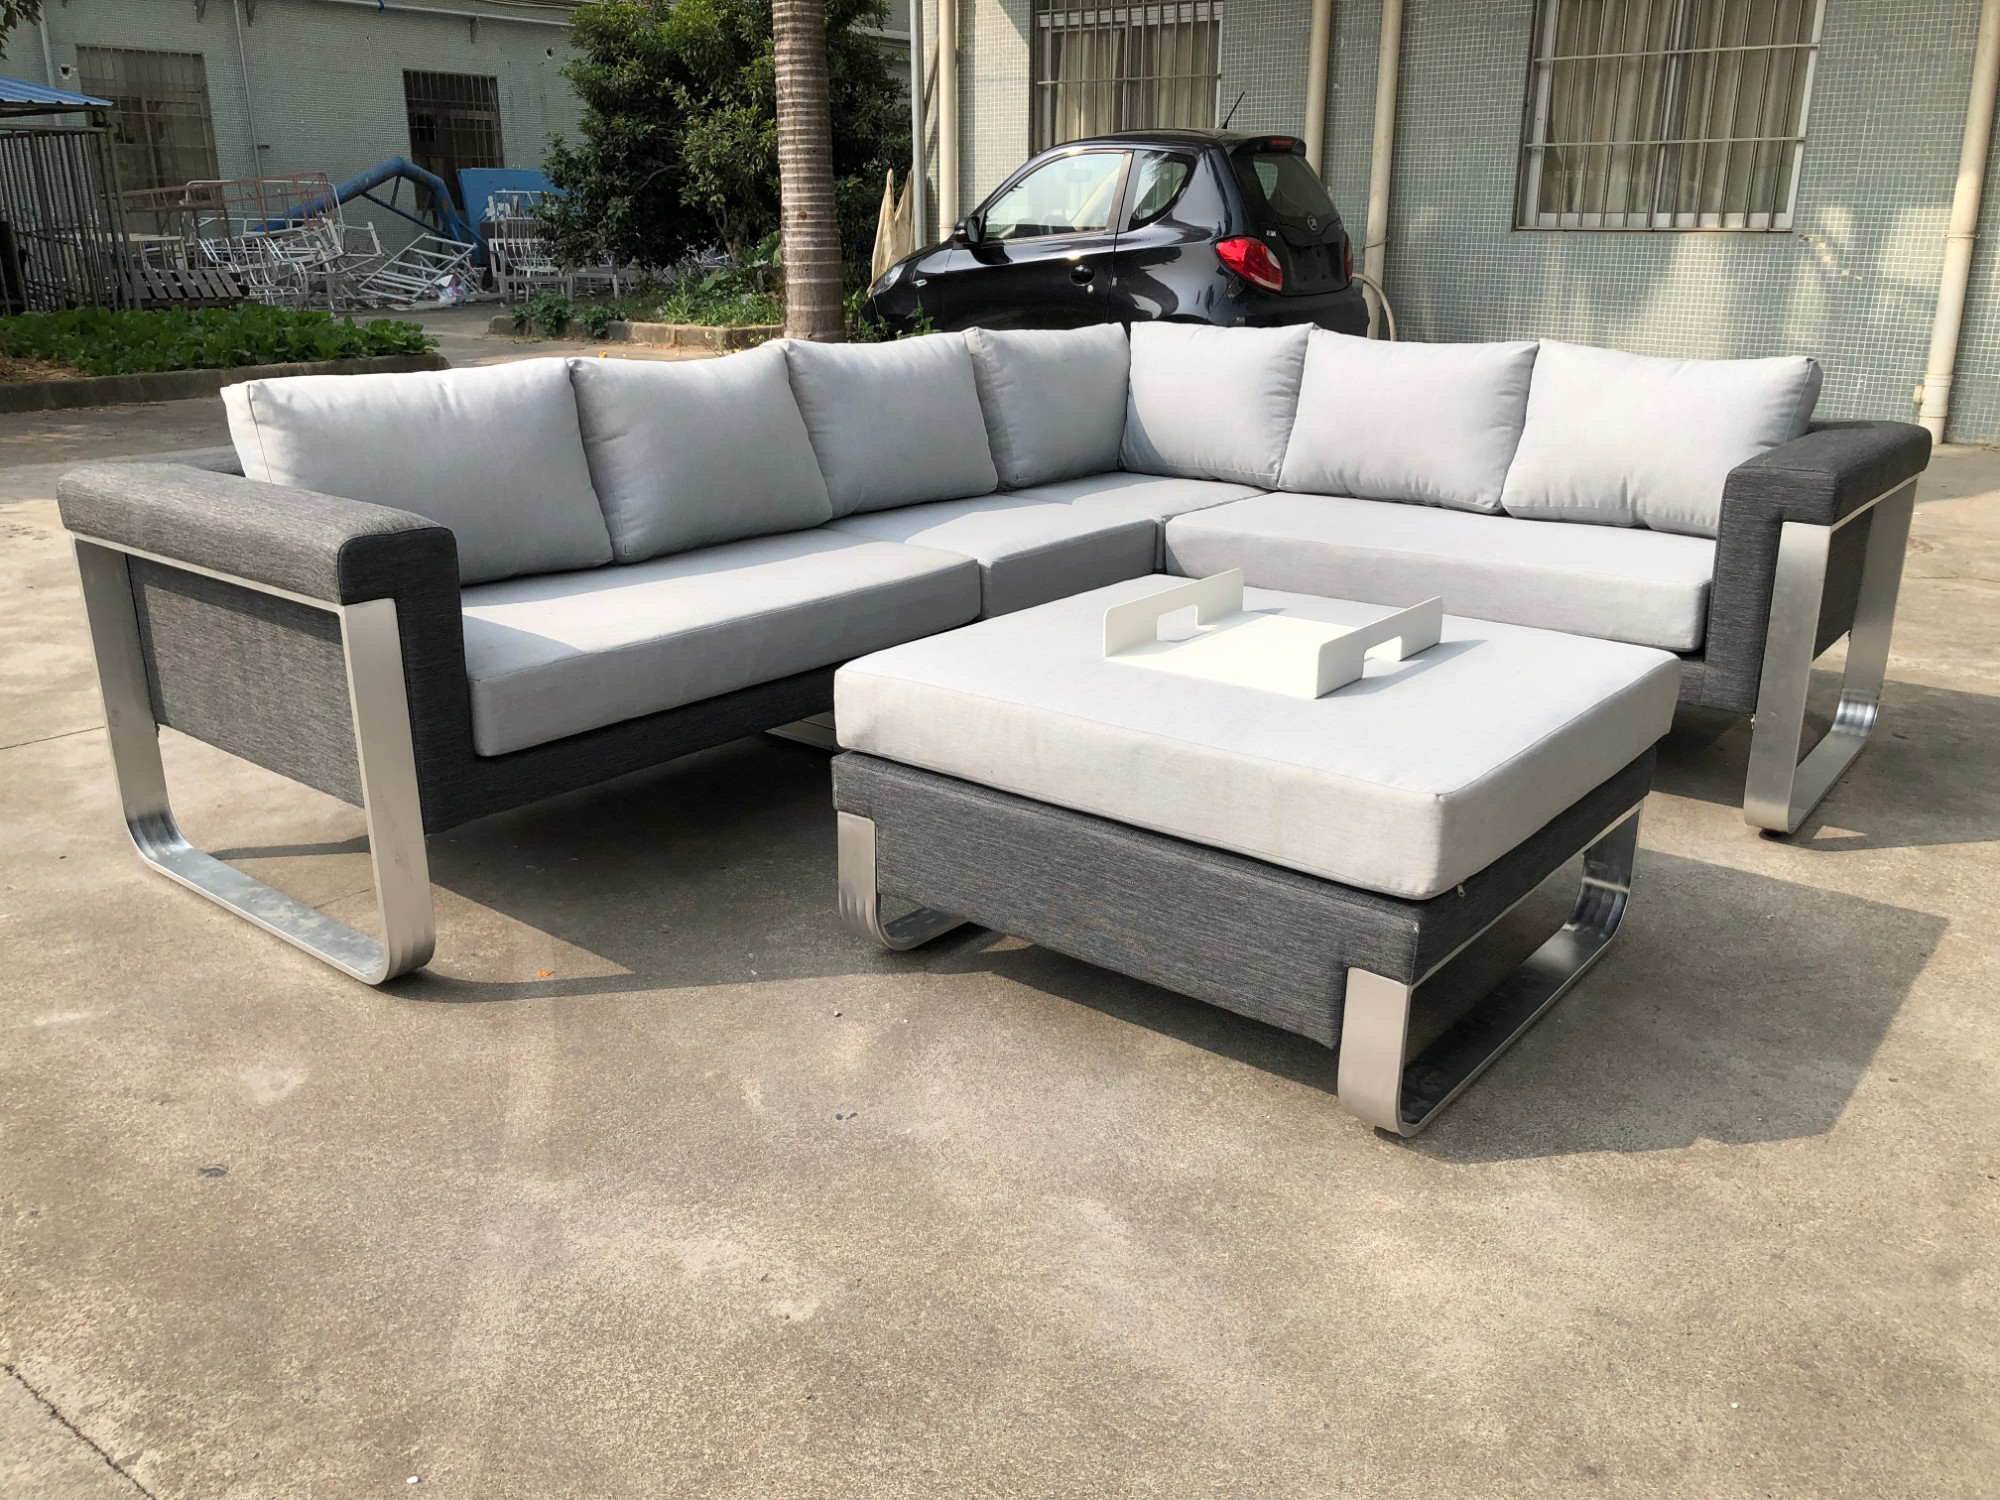 Outdoor Rope Furniture Patio Garden Sofa Manufacturers, Outdoor Rope Furniture Patio Garden Sofa Factory, Supply Outdoor Rope Furniture Patio Garden Sofa